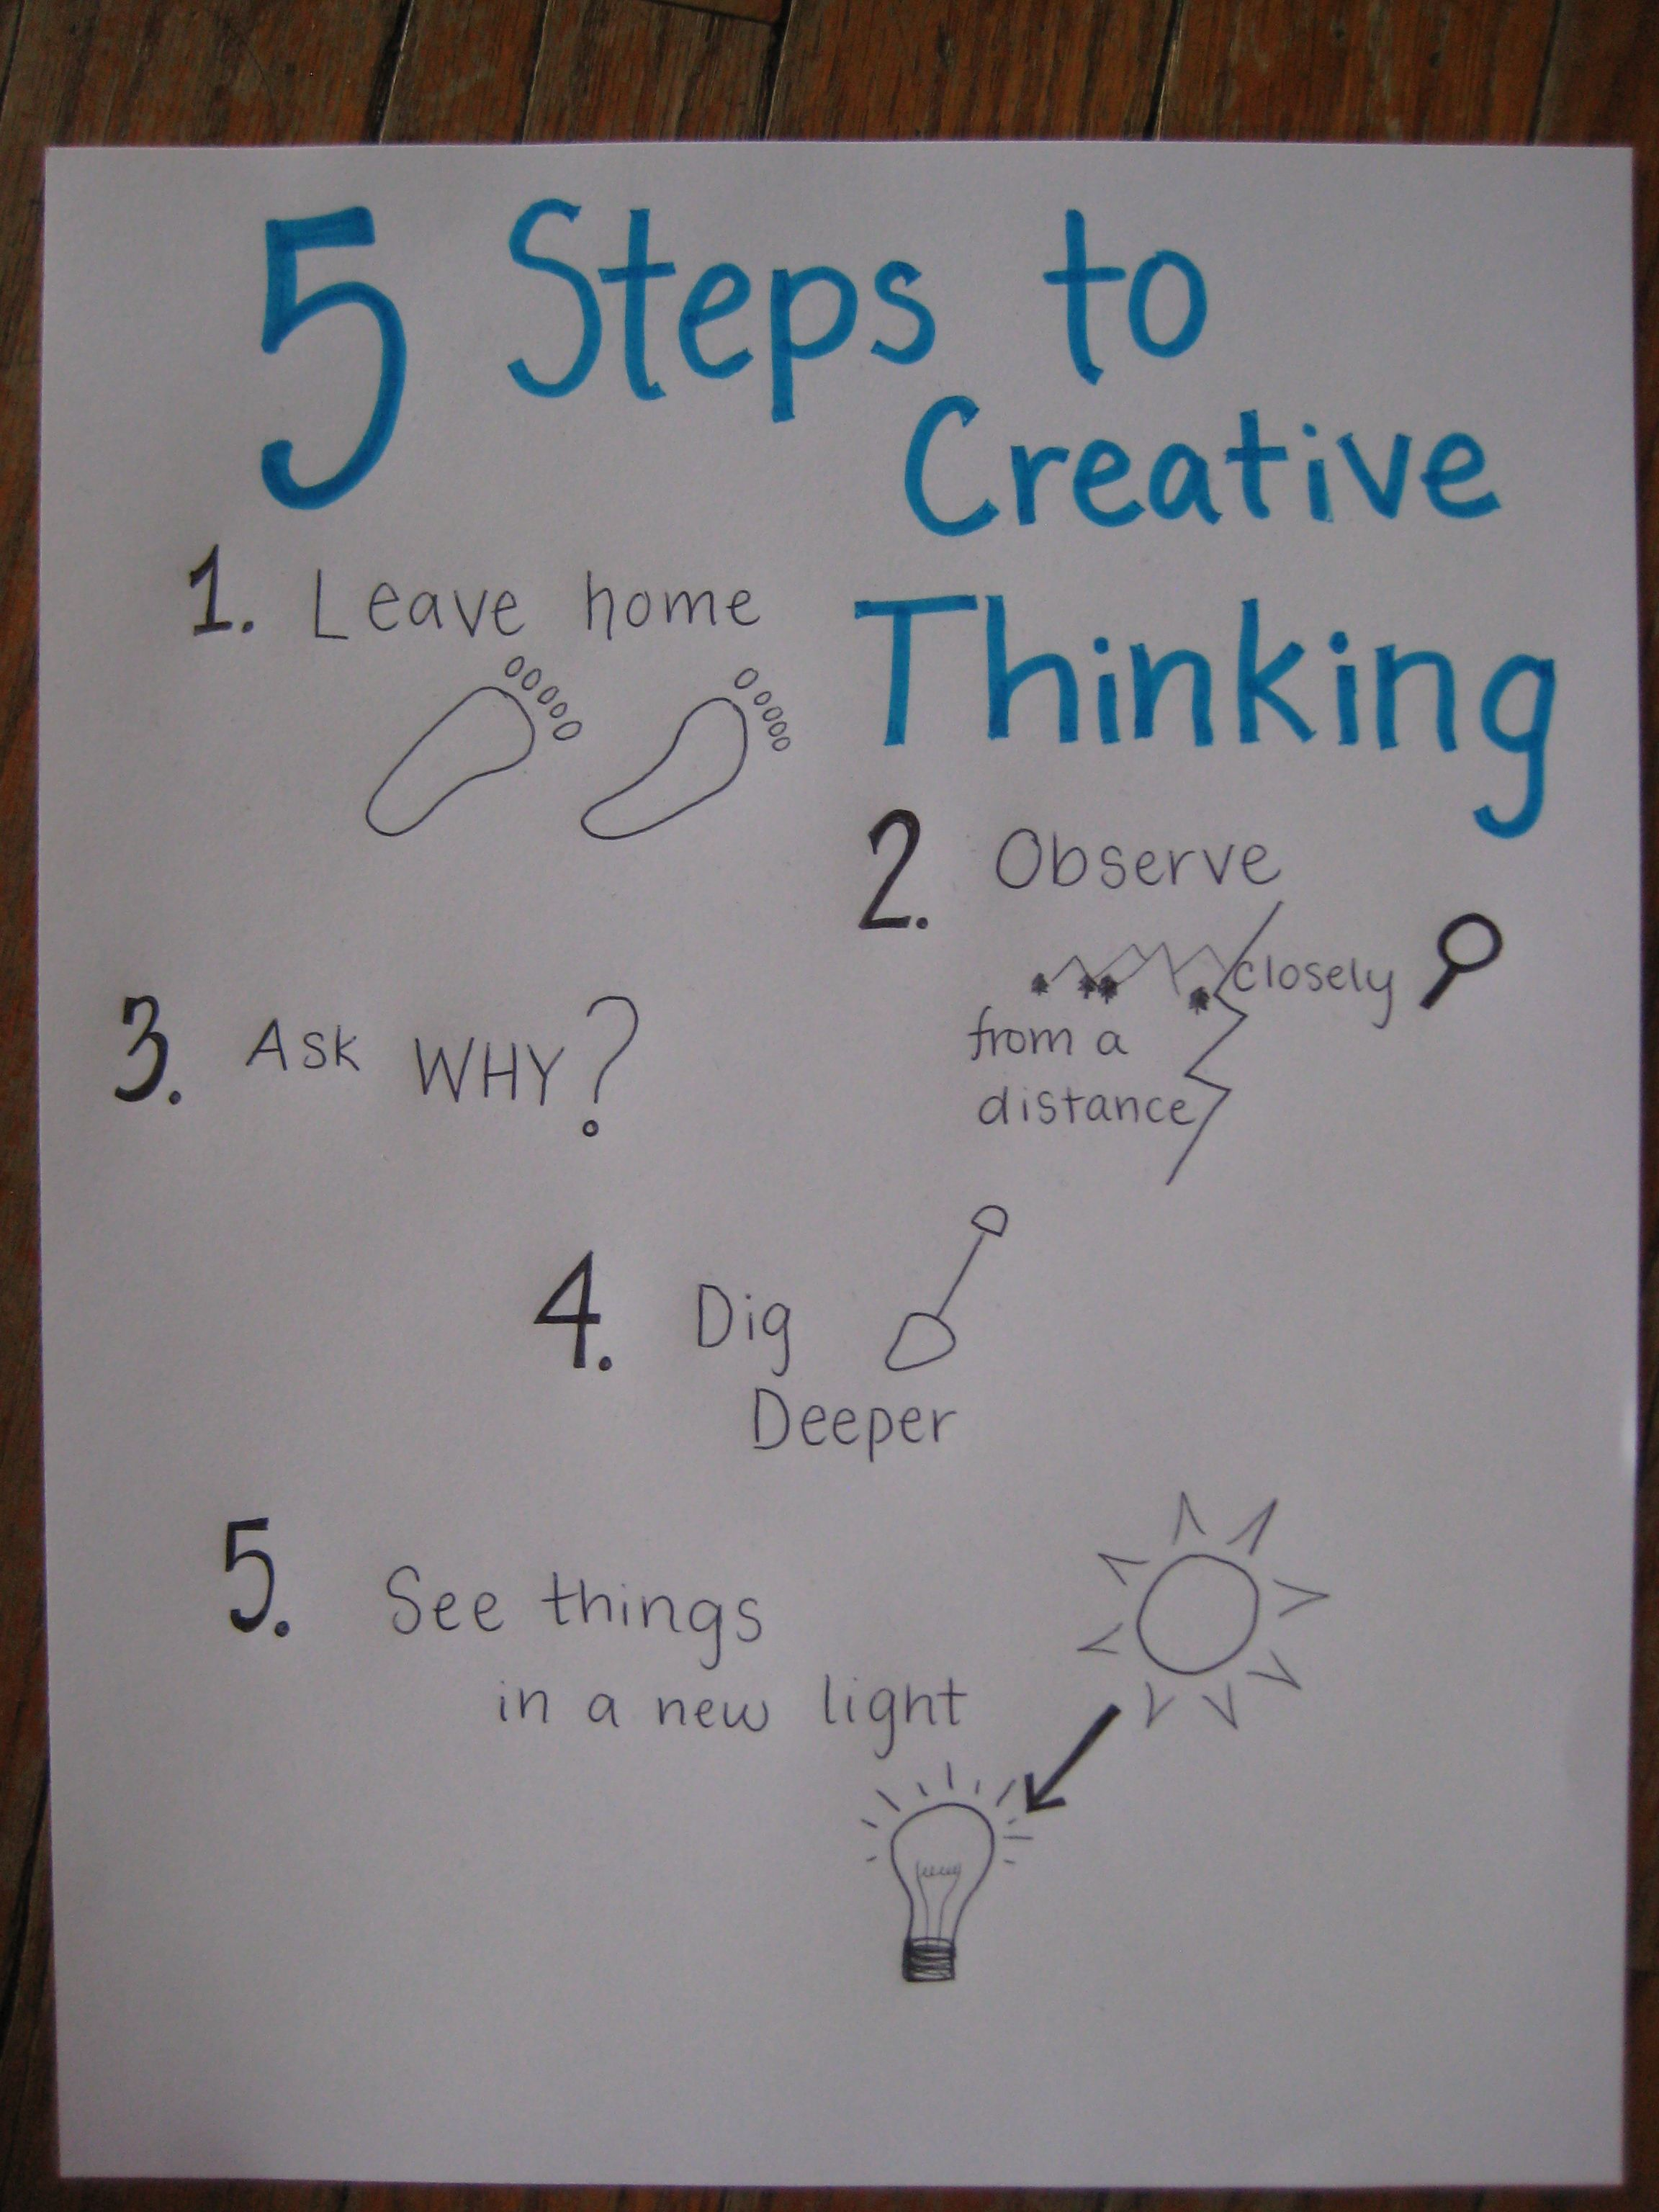 5 Steps to Creative Thinking